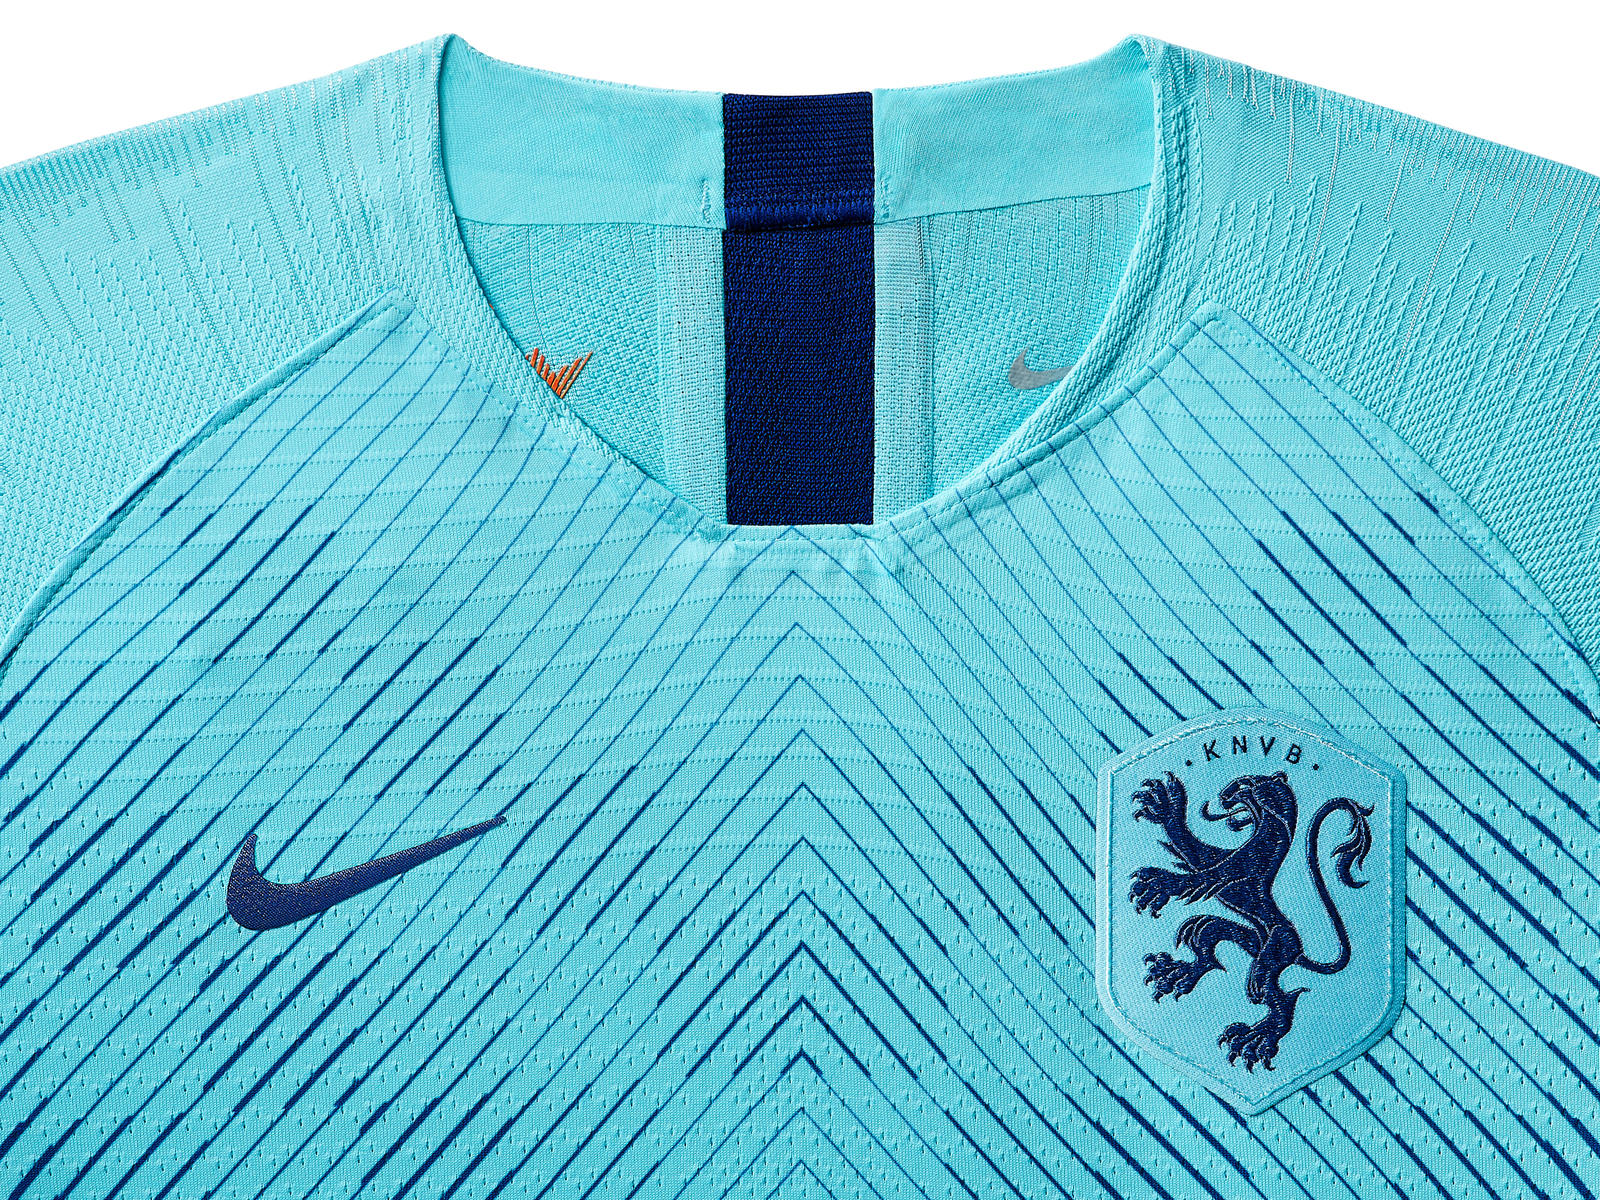 netherlands-national-team-kit-2019-laydown-001_85952.jpg